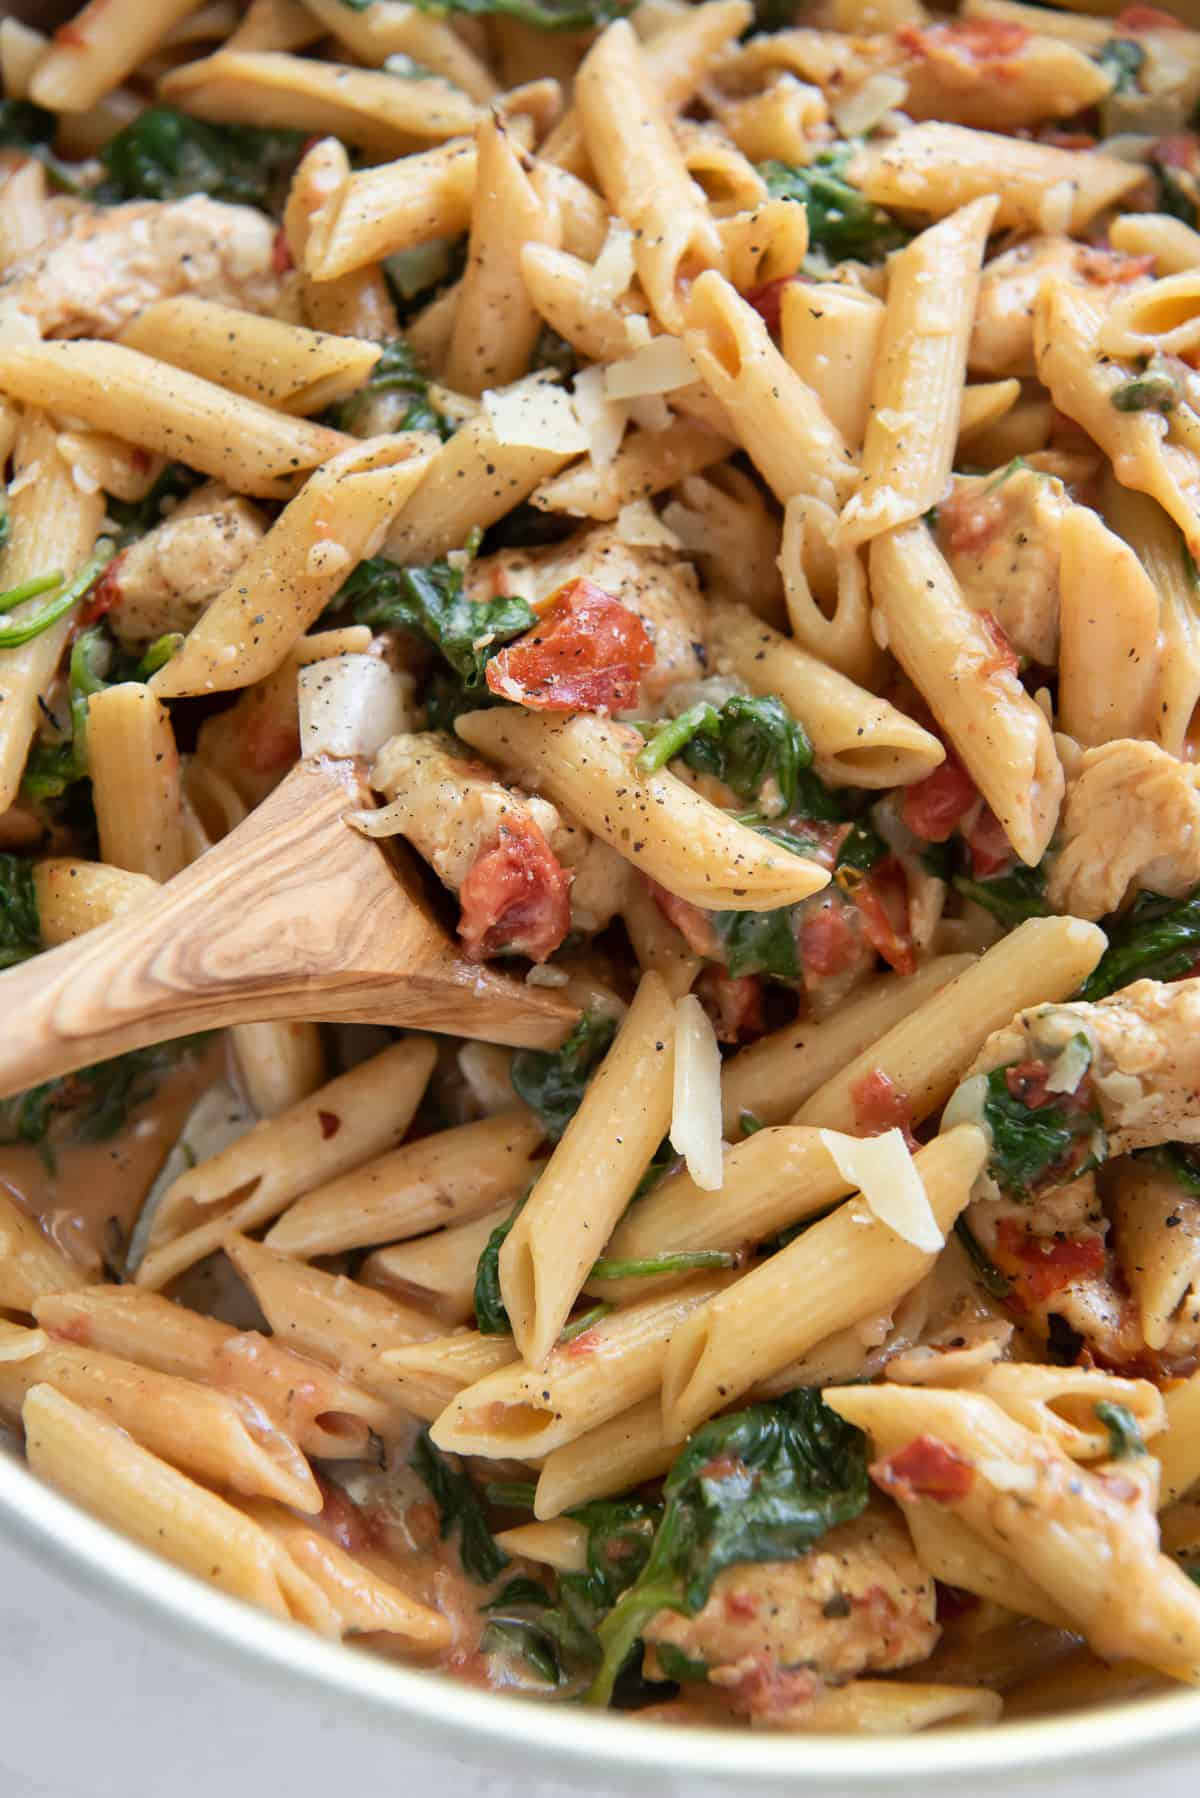 A close up of a spoon in a bowl of pasta with tomatoes, spinach and chicken.